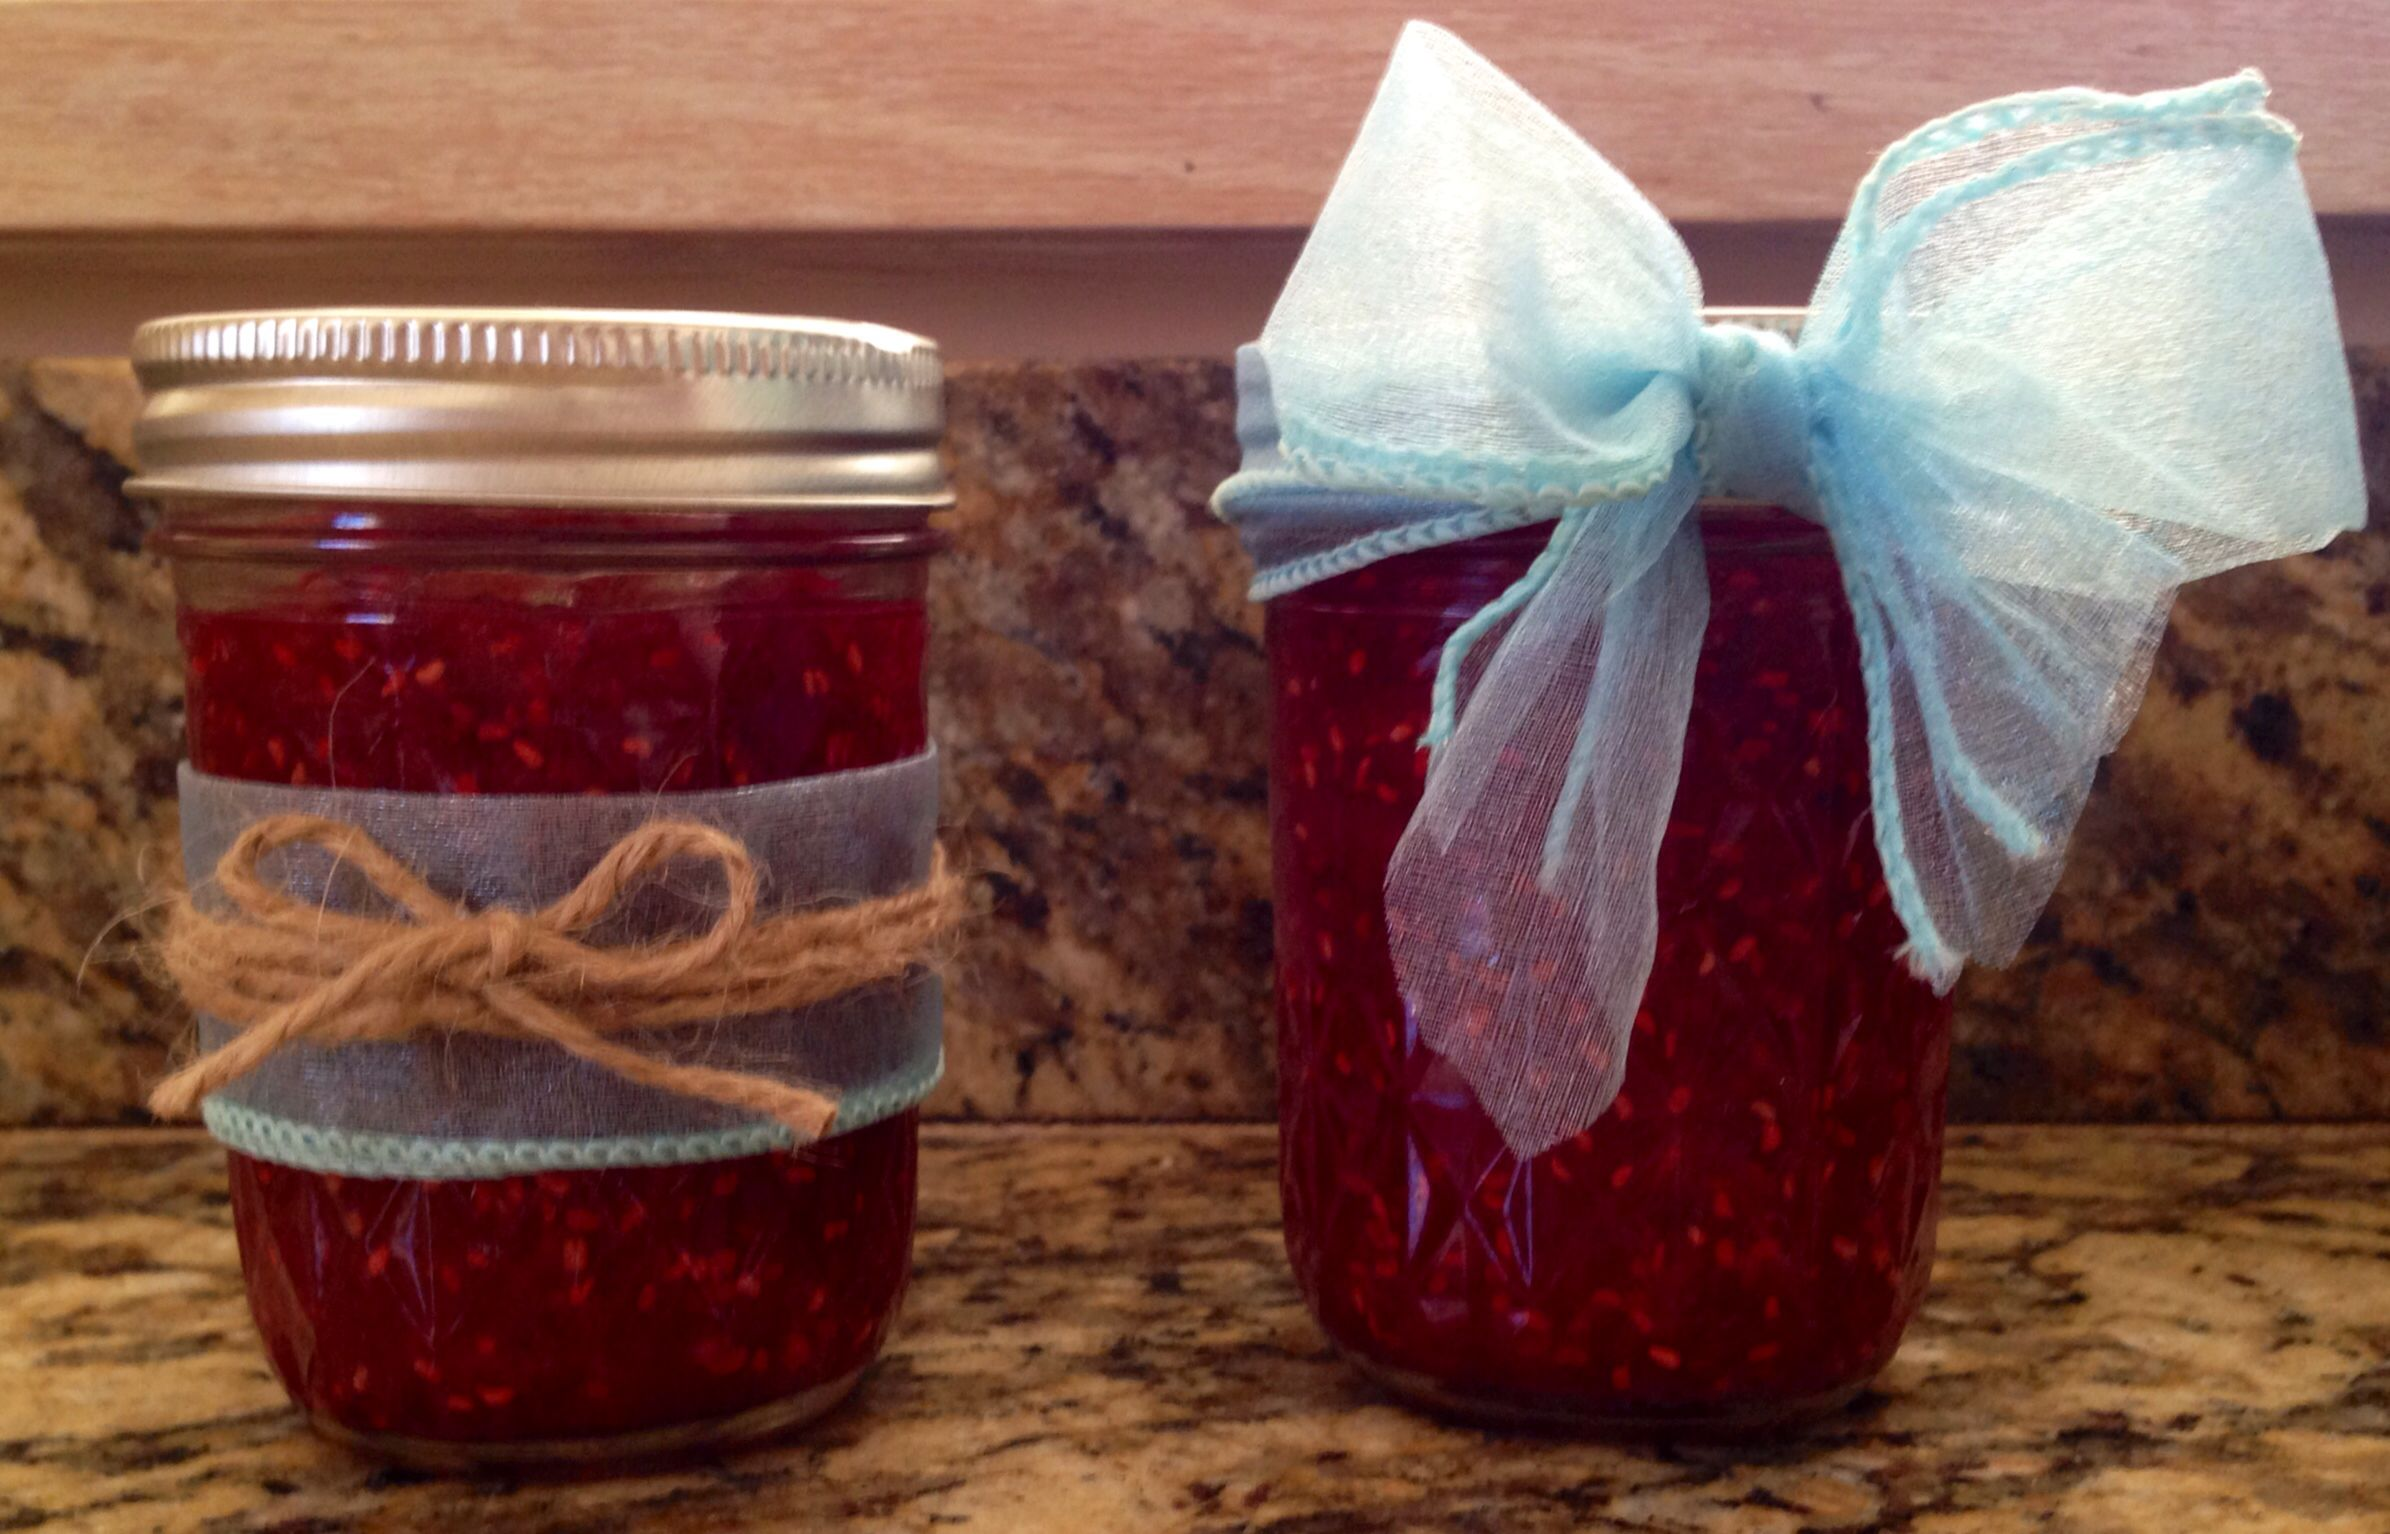 Homemade Raspberry Jam and I even decorated my jars!